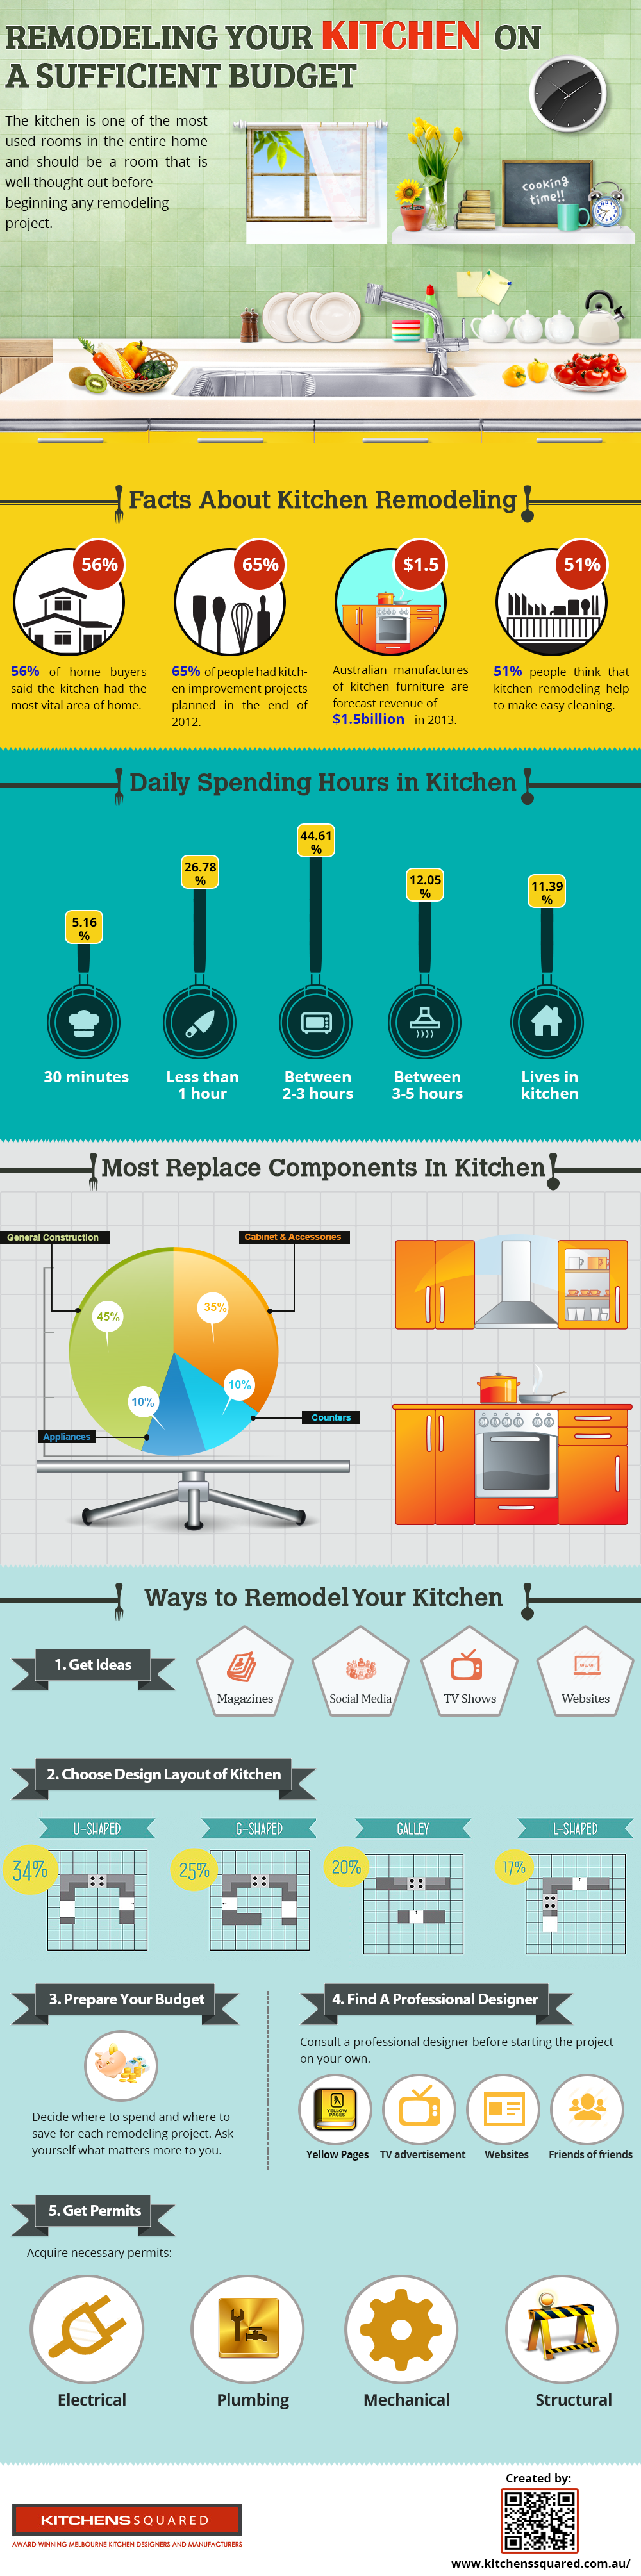 remodeling-your-kitchen-on-a-sufficient-budget-infographic | Modular ...